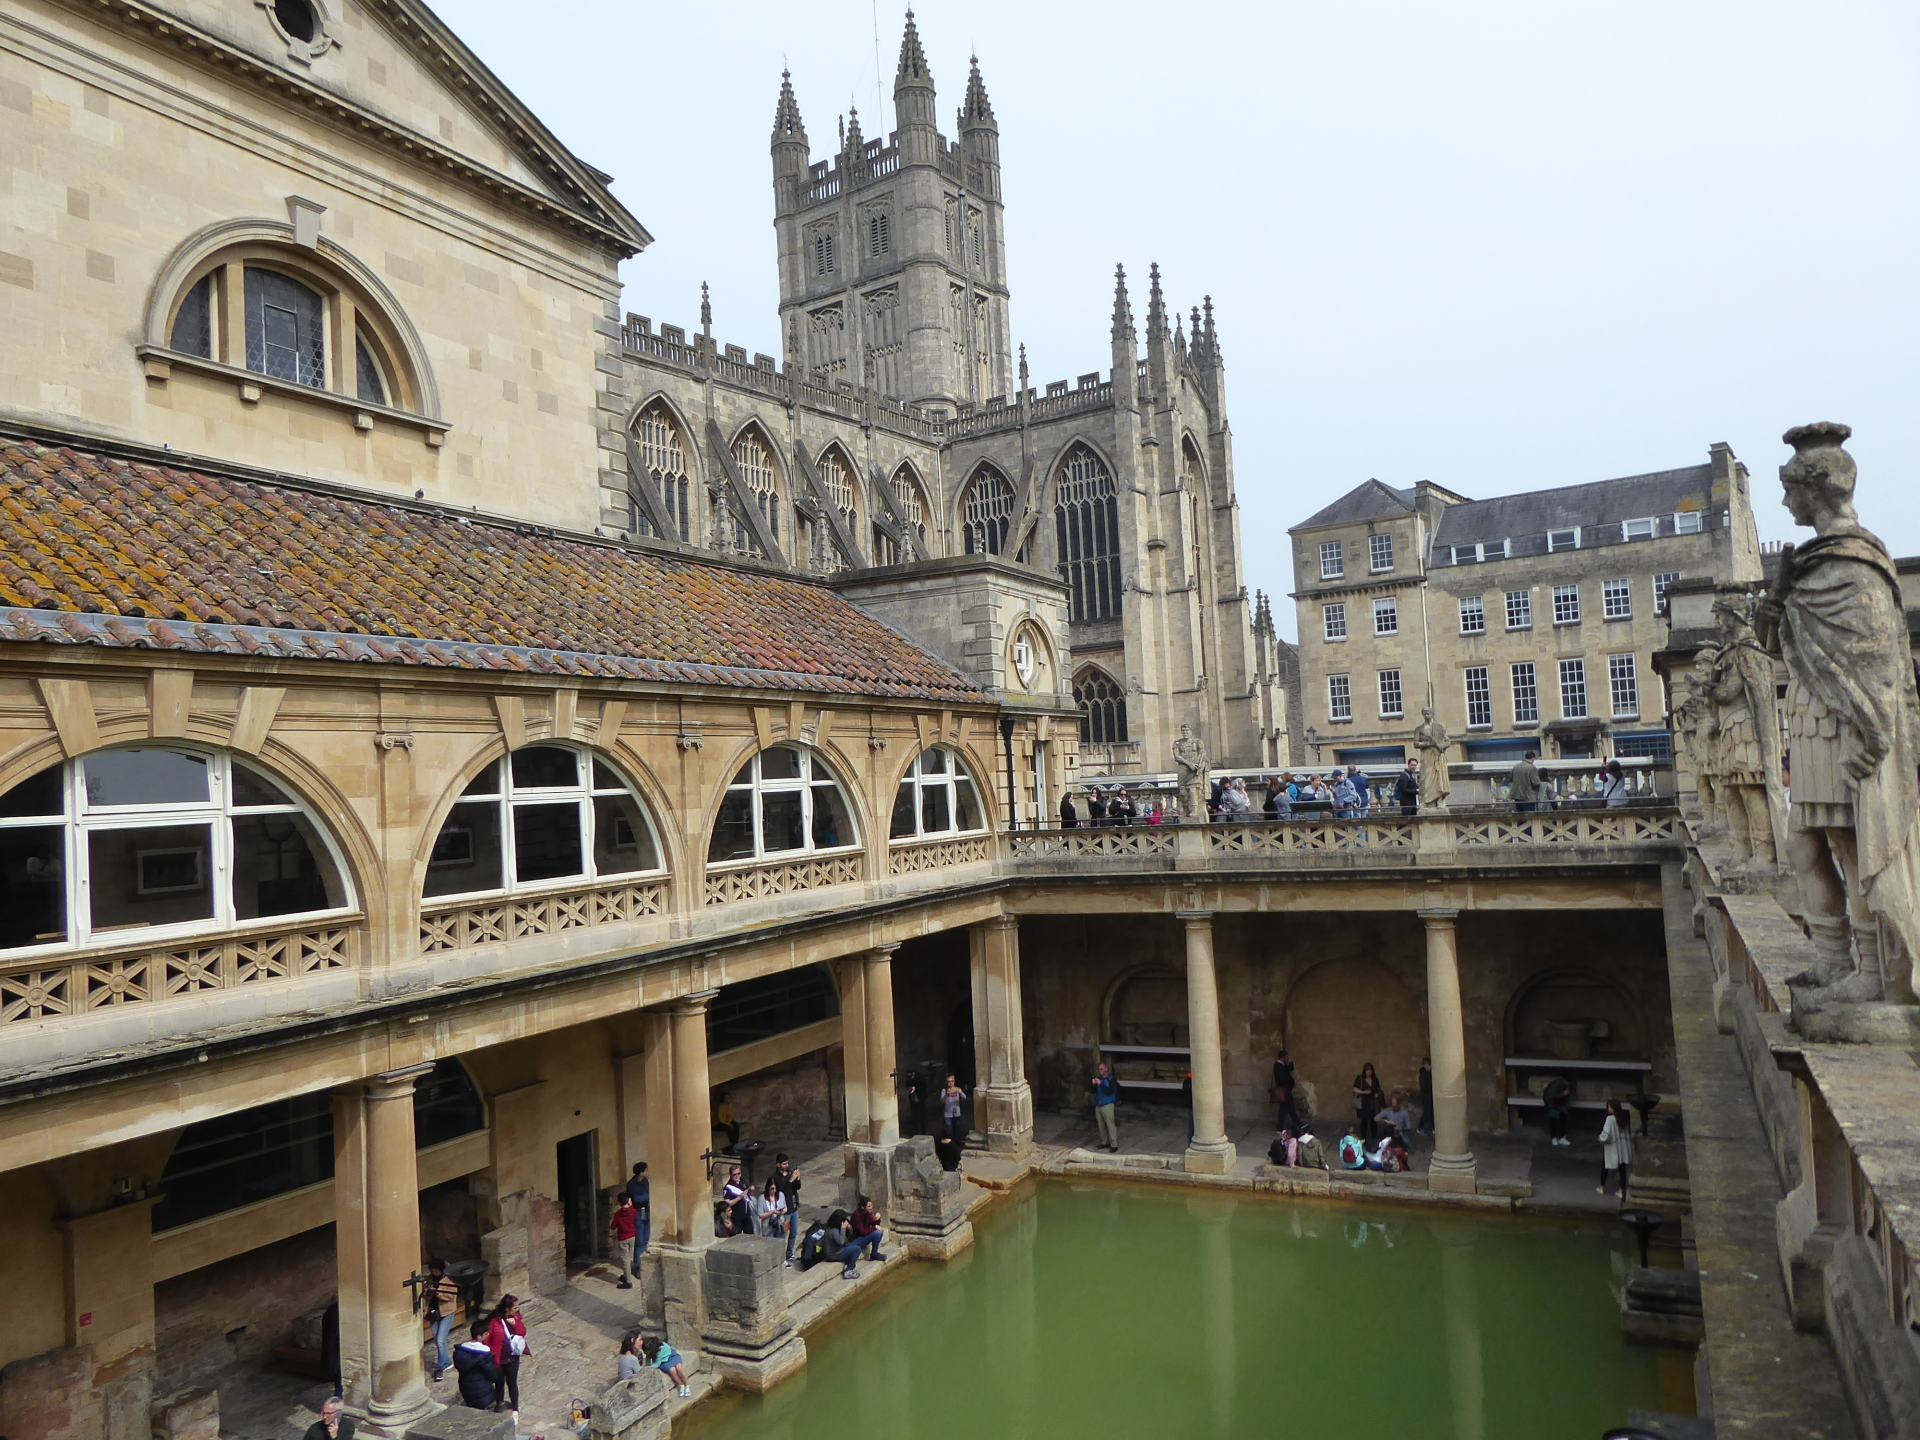 View from inside the Roman Baths showing green coloured water in the bottom of a pillared area. The Bath Abbey is the background above the baths.